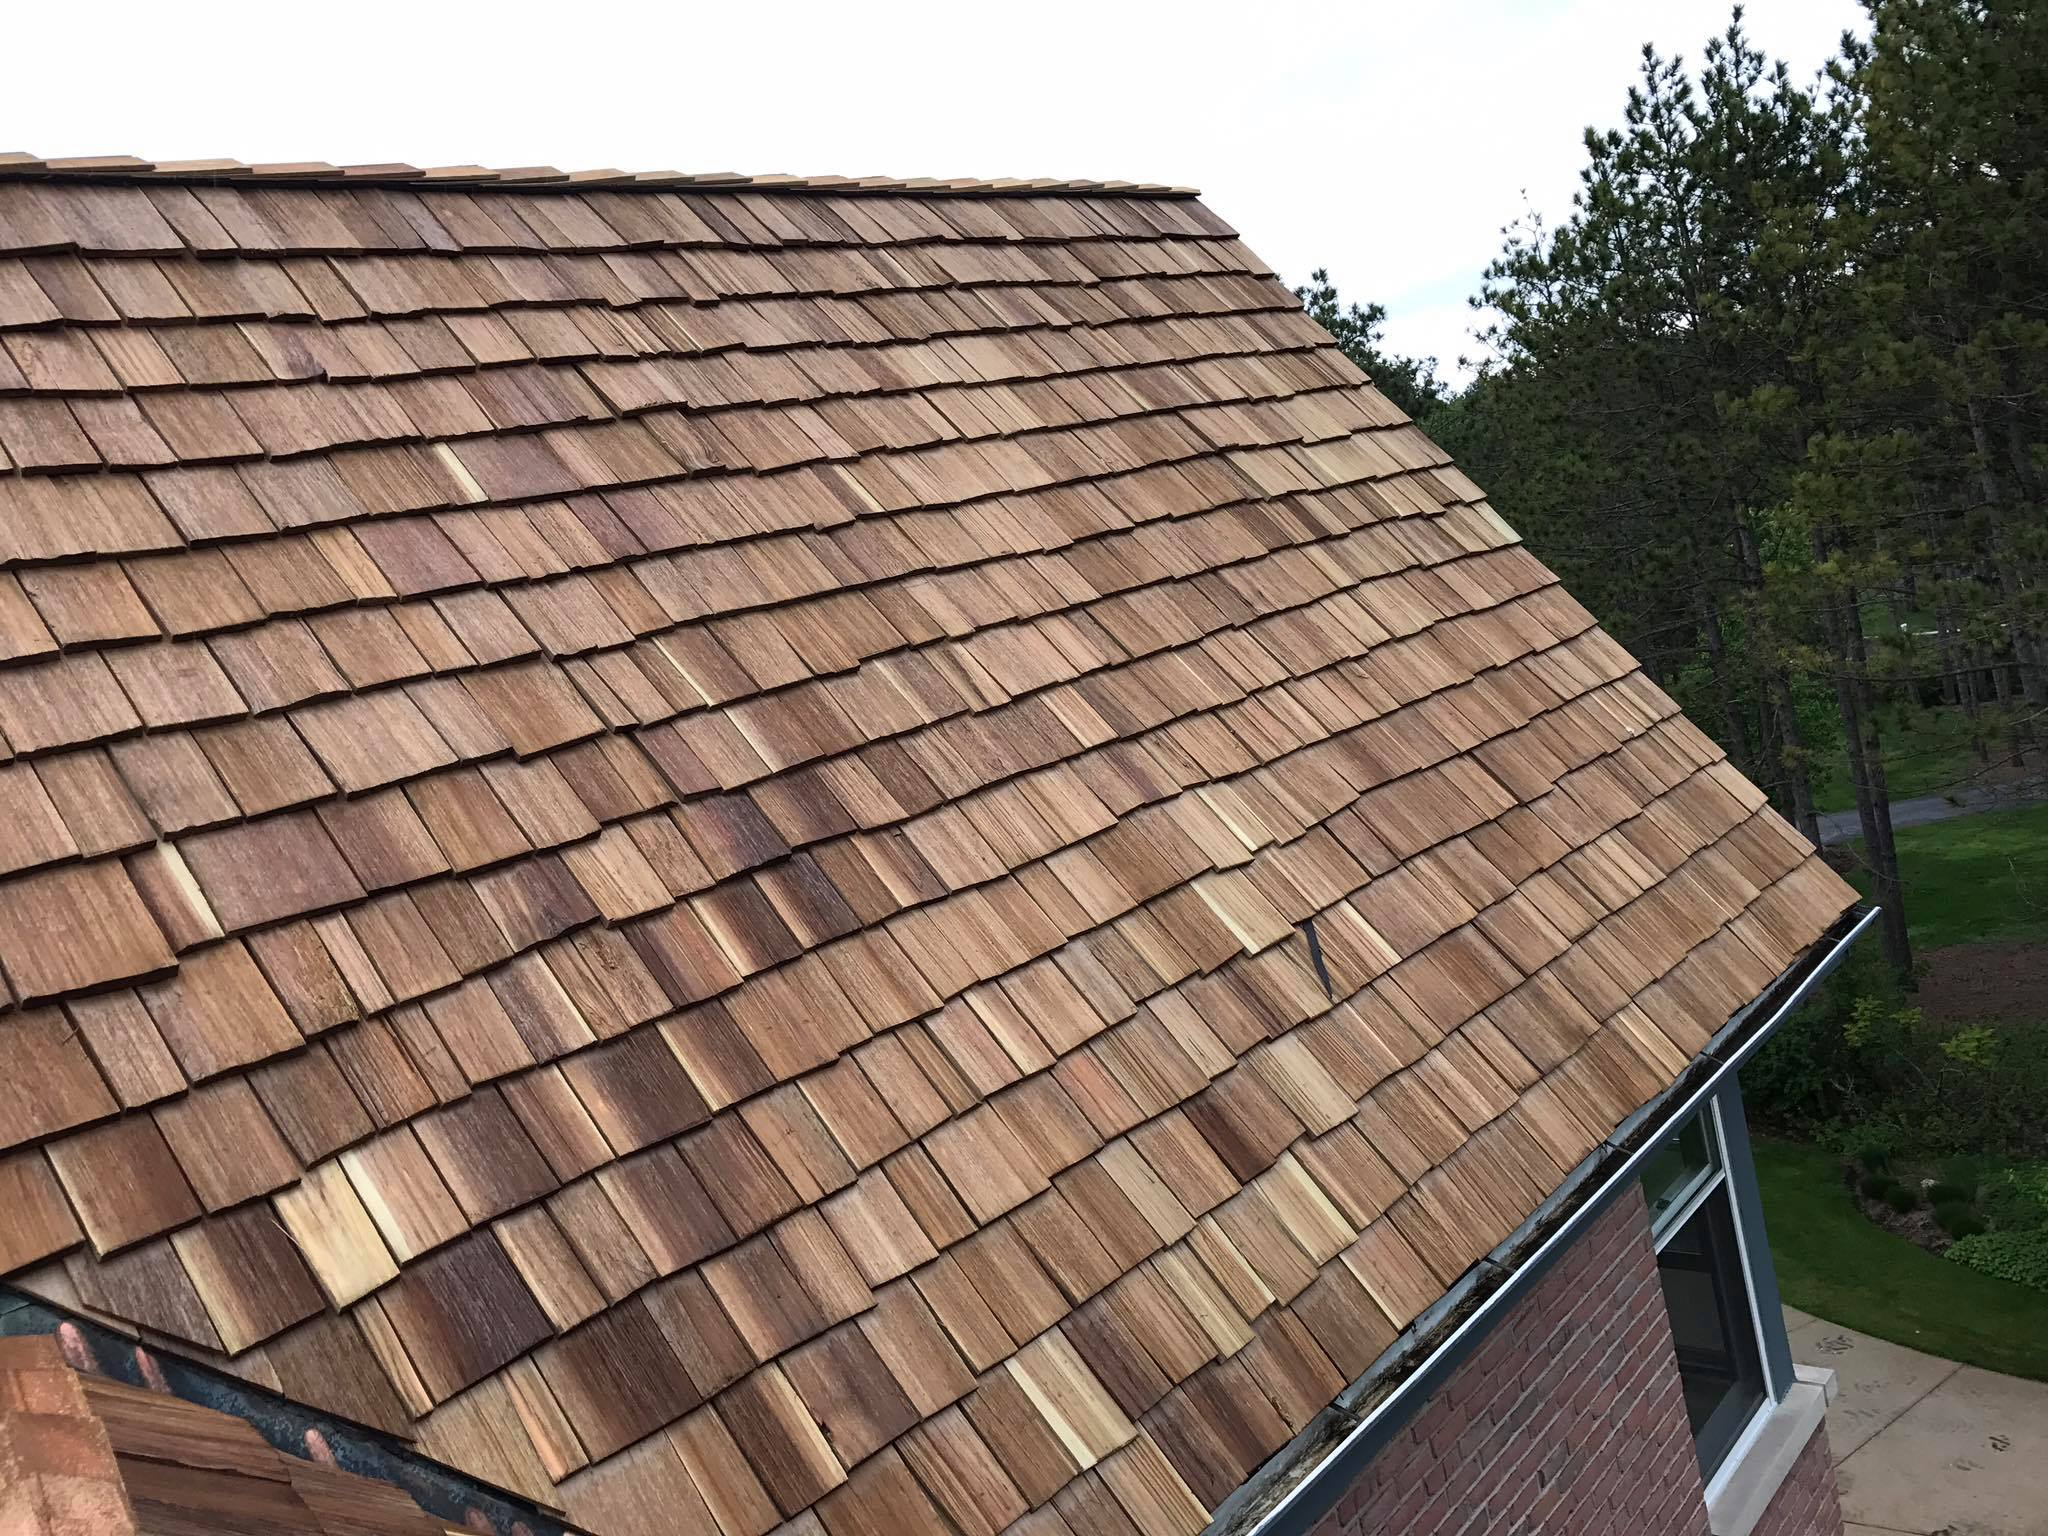 New Residential Cedar Shingle Roof Roofing Siding